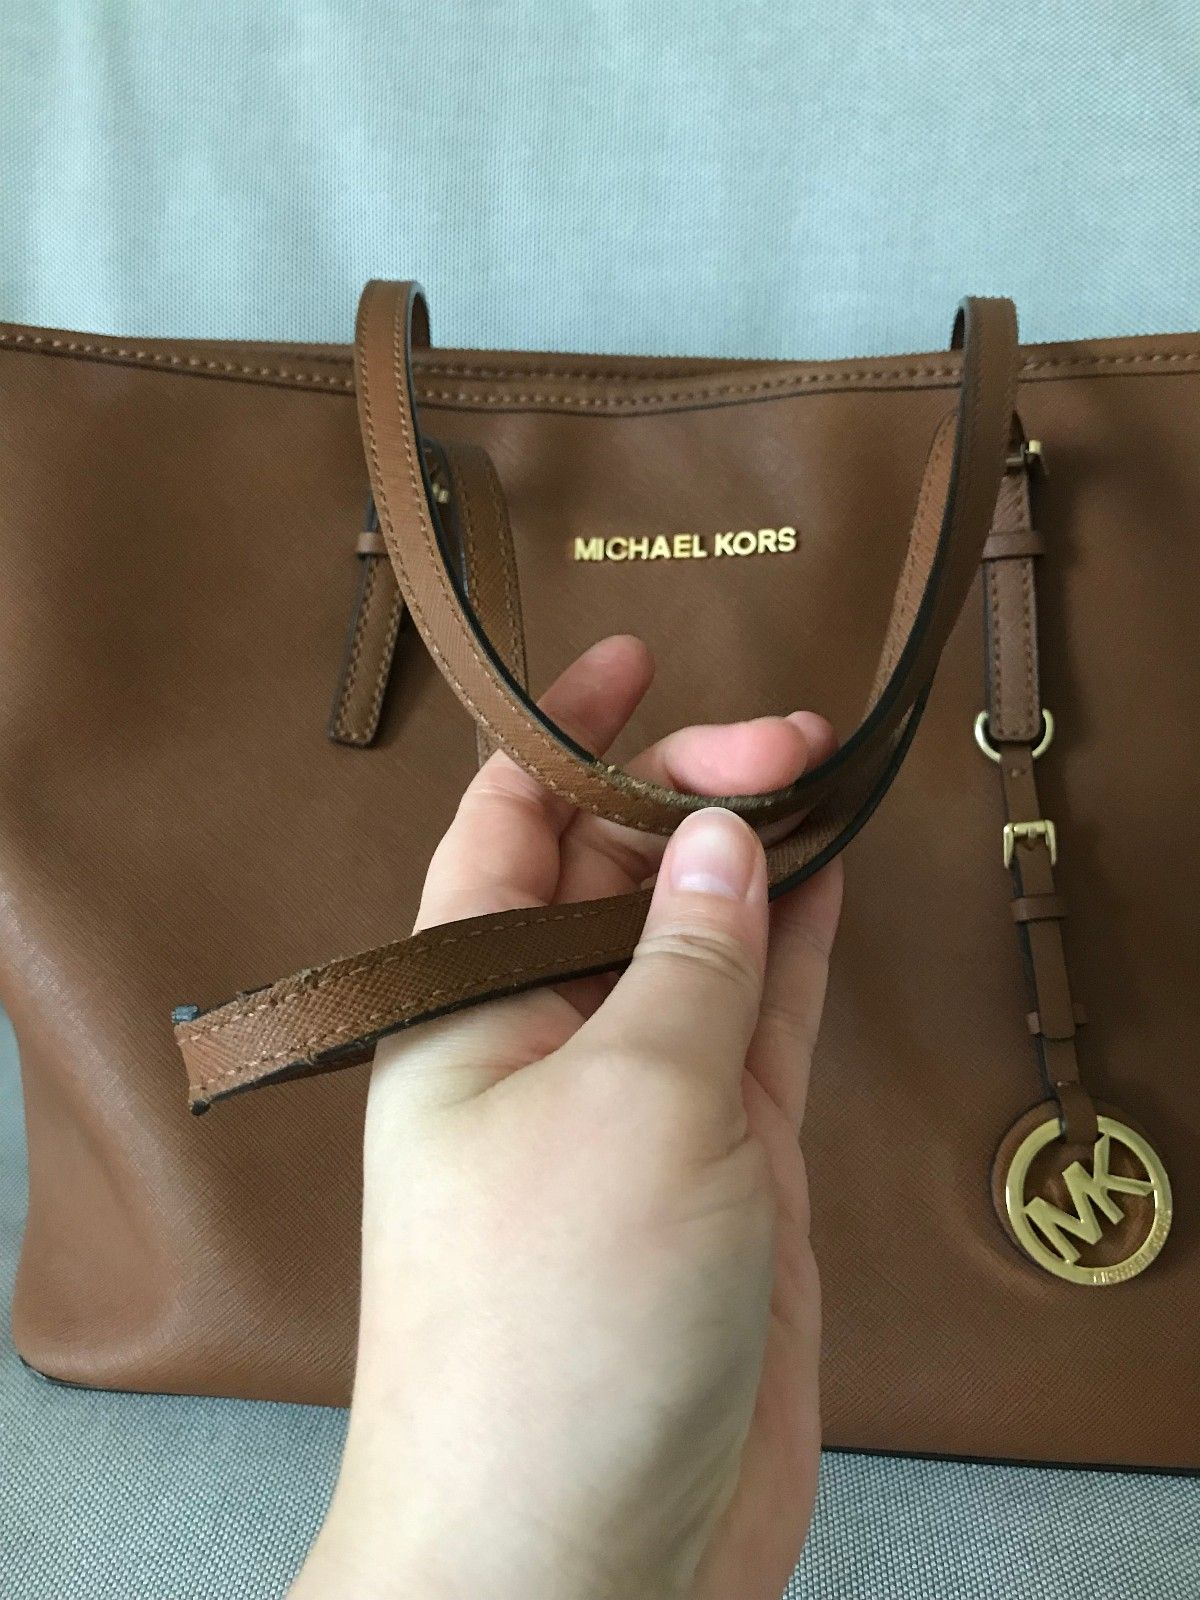 bc579ed0a Fantastisk Michael Kors Jet Set travel veske i brun | FINN.no